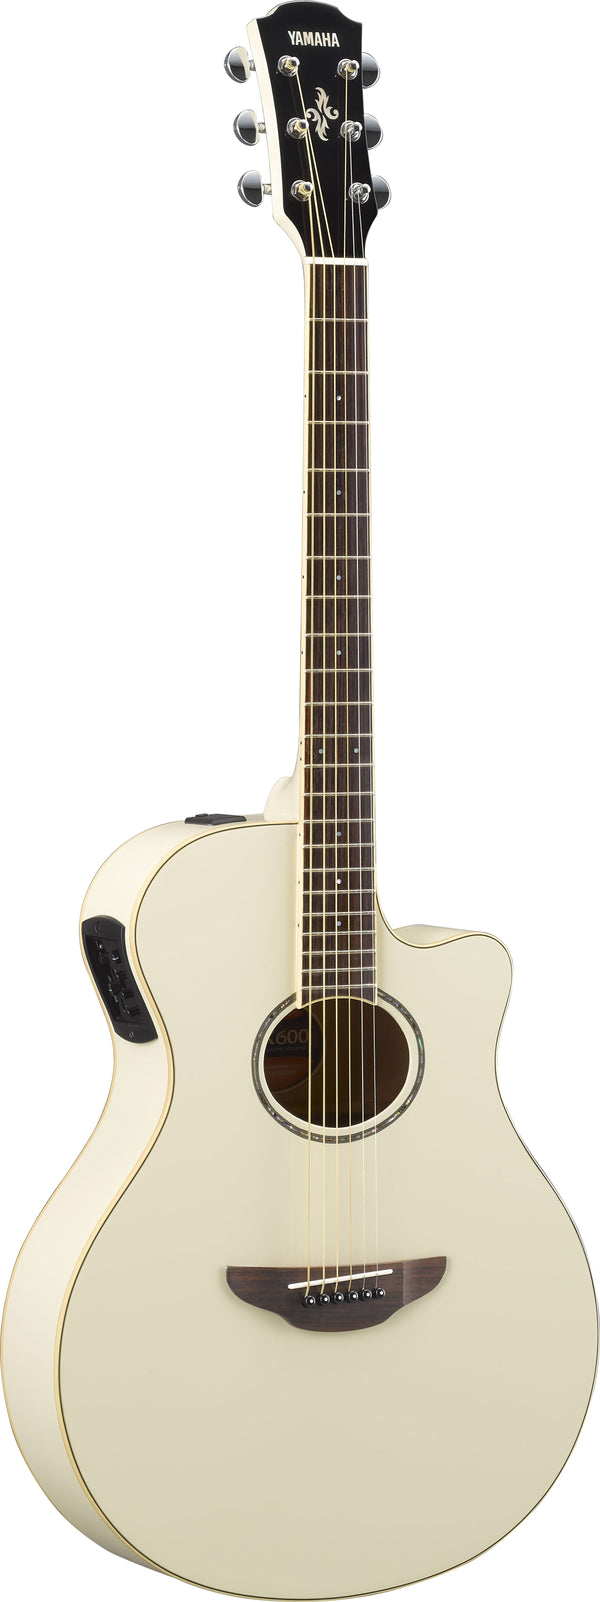 Yamaha APX600 Acoustic Guitar. Vintage White